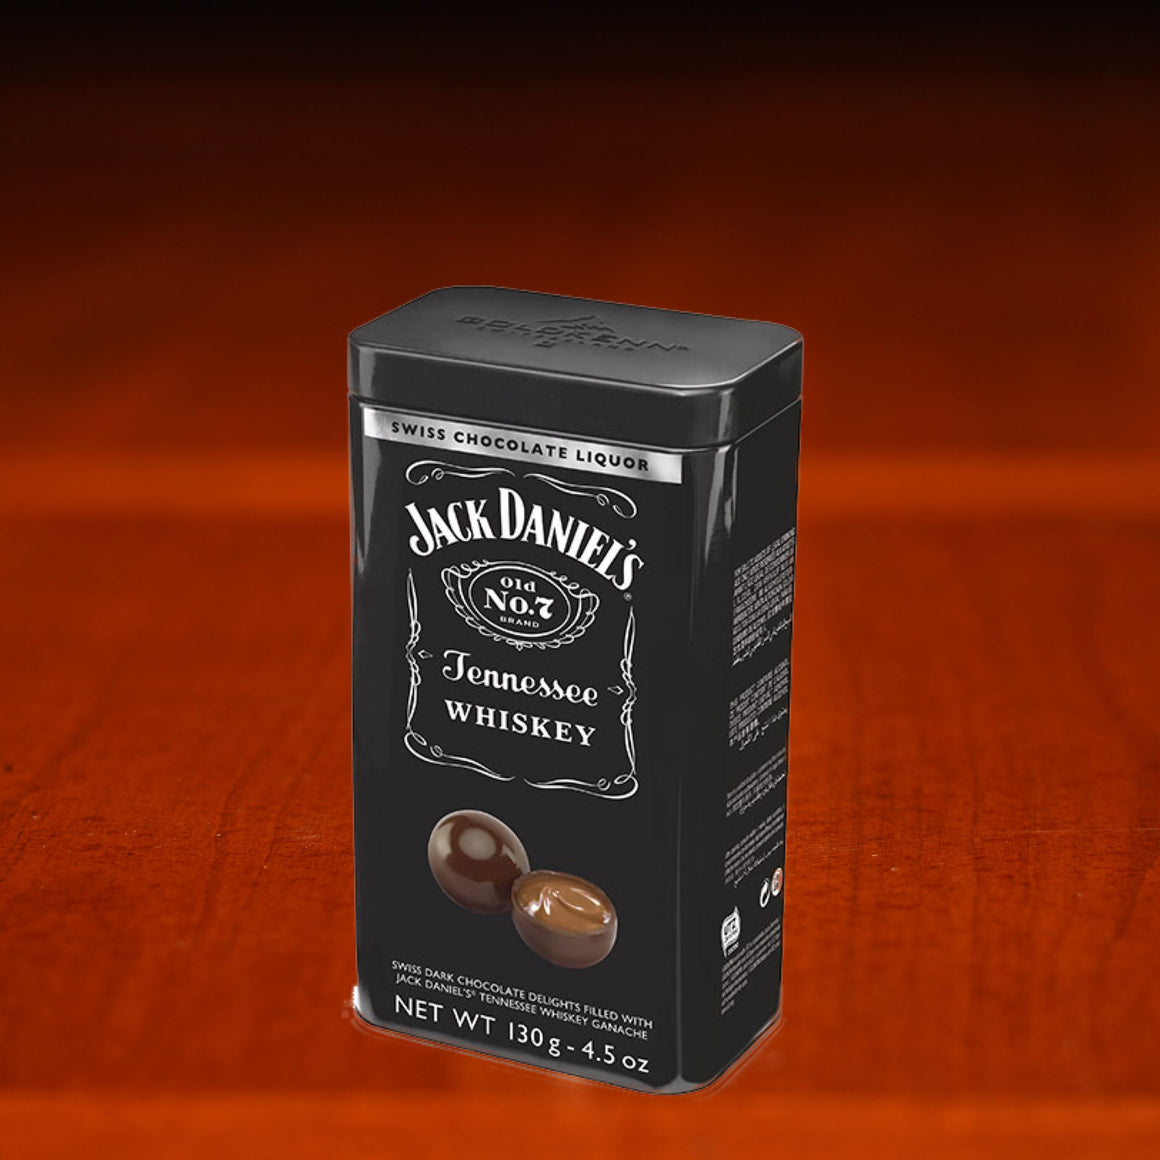 Jack Daniel's Goldkenn Swiss Chocolate Gift tin at The Whiskey Cave